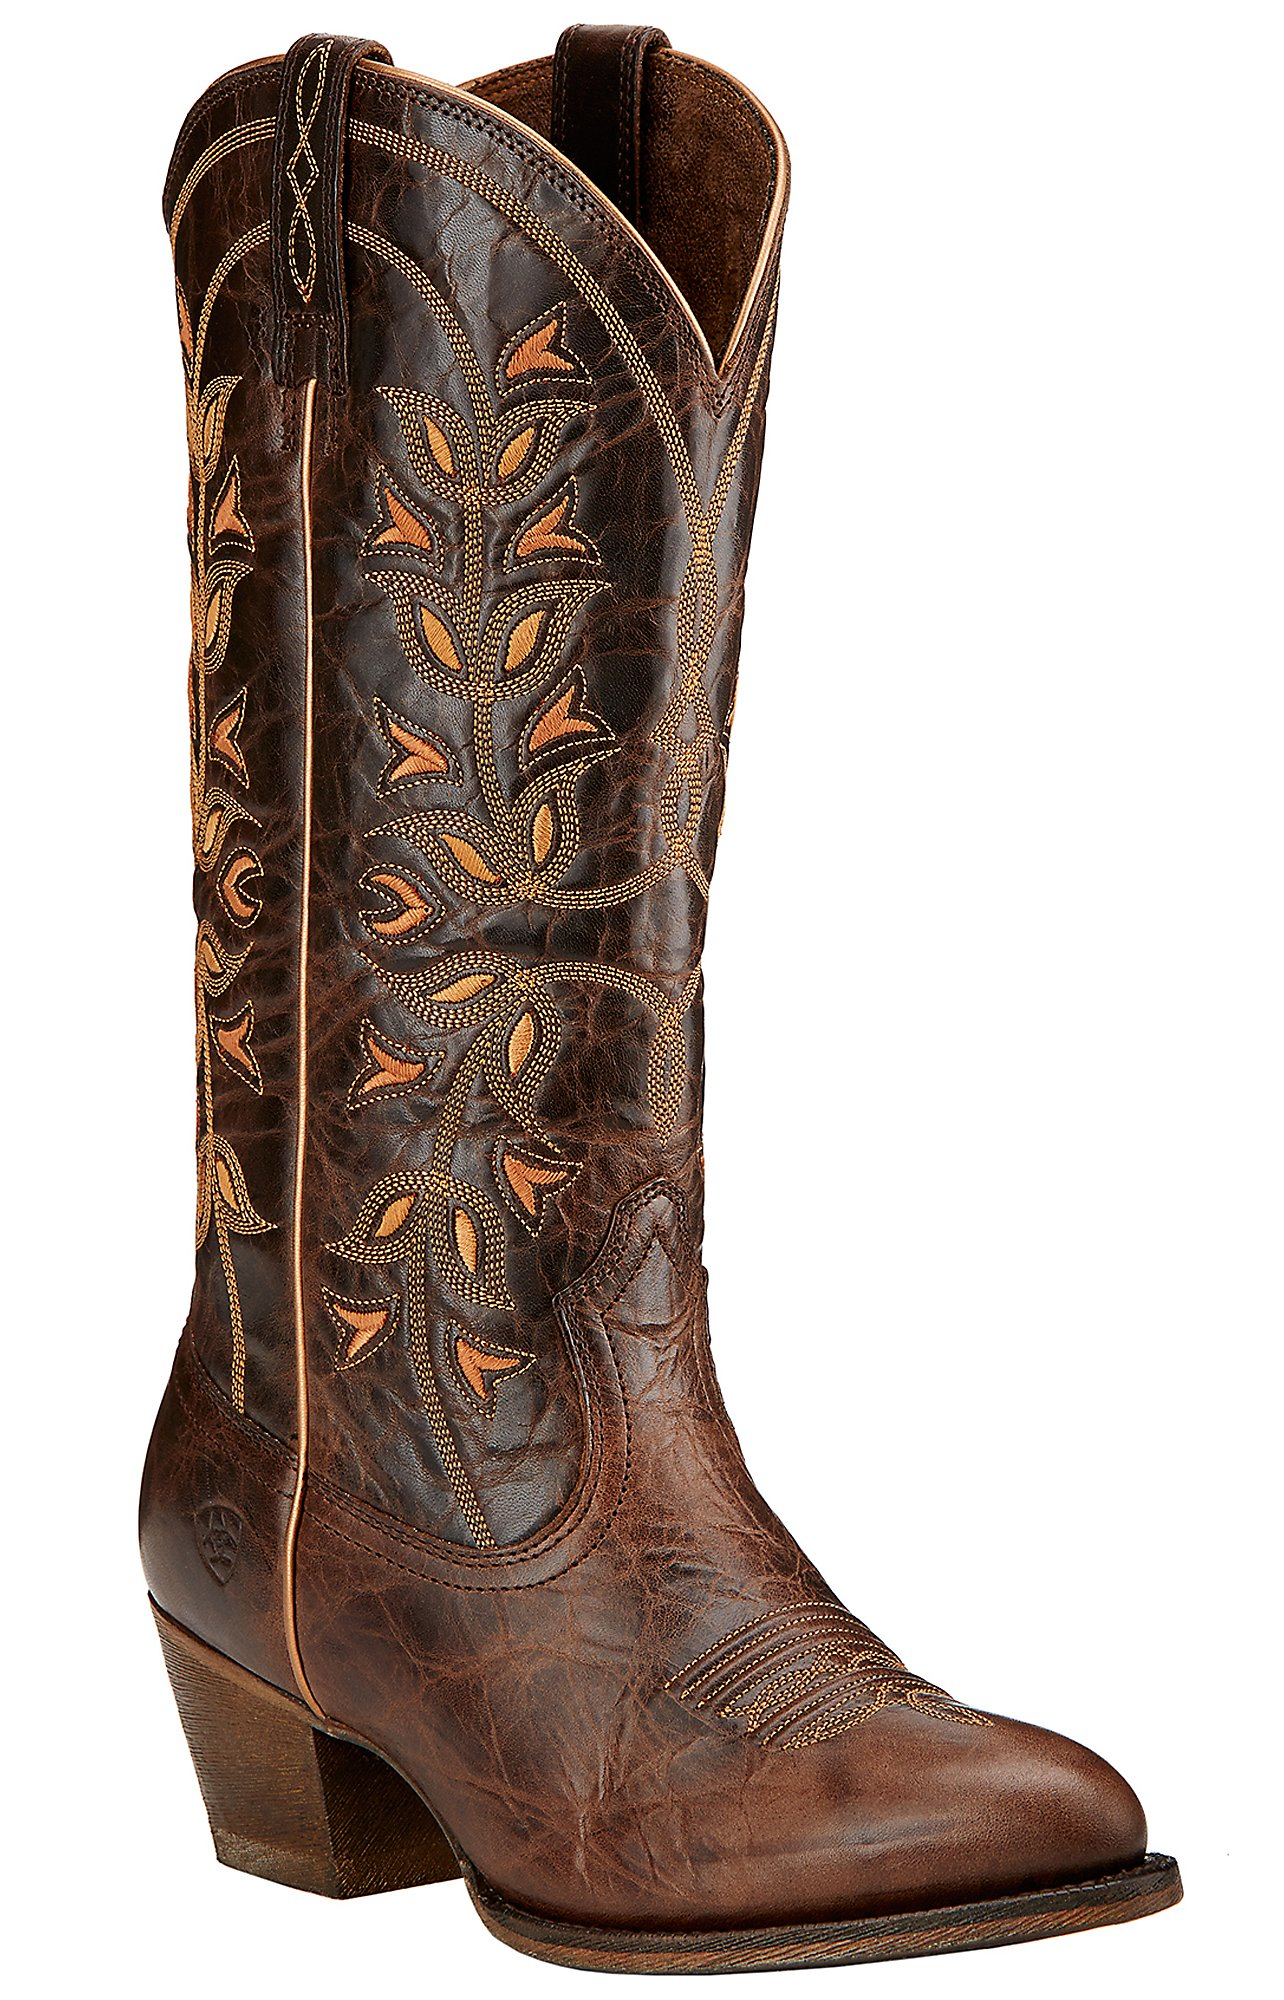 Women's Western Boots | Ladie's Western Boots | Cavender's